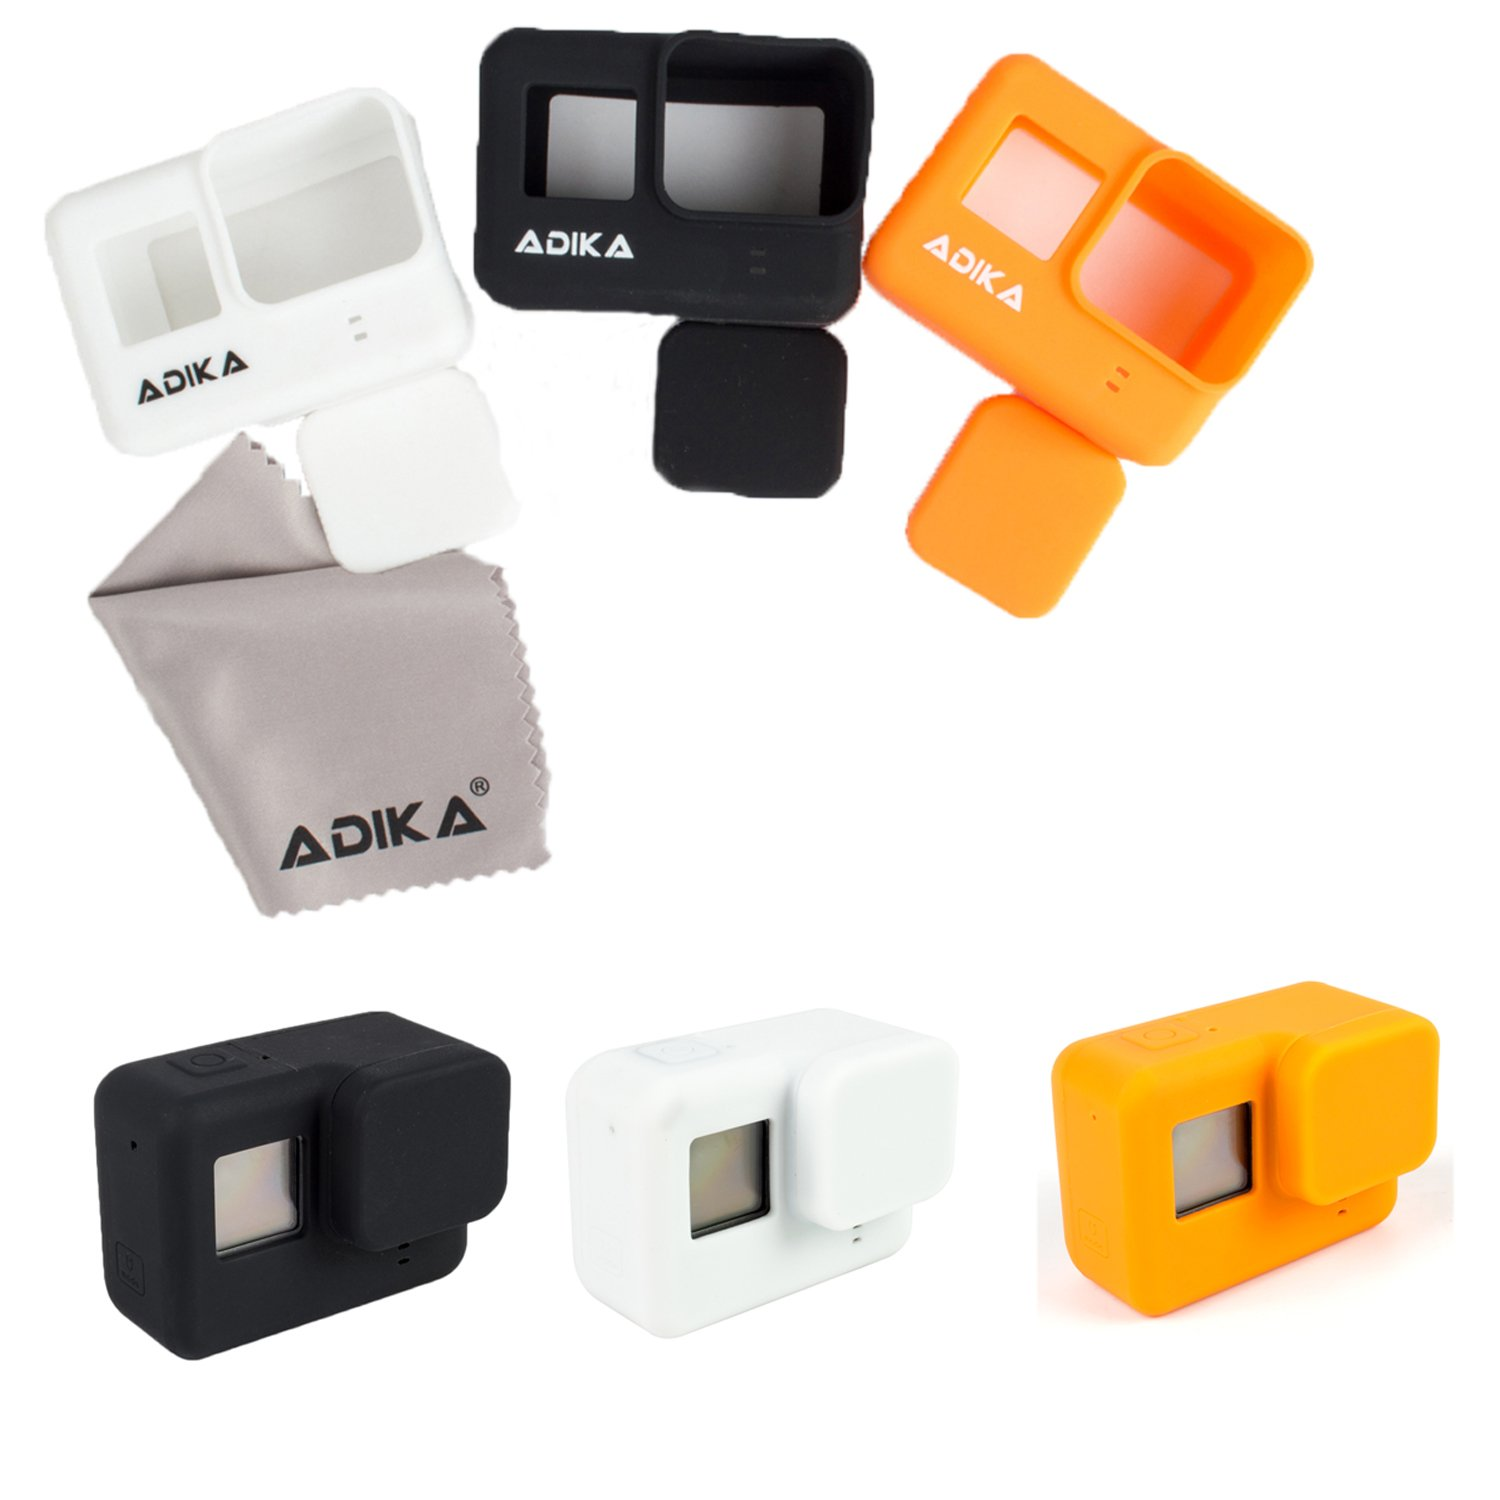 Silicone Body Skins for Gopro hero5/6 silicone case cover (Black/Orange/White 3pcs + Lens Cap + Lens Protector + Screen Protector) w/lens cap for Gopro hero 5 w/lens and lcd screen protector By ADIKA by ADIKA